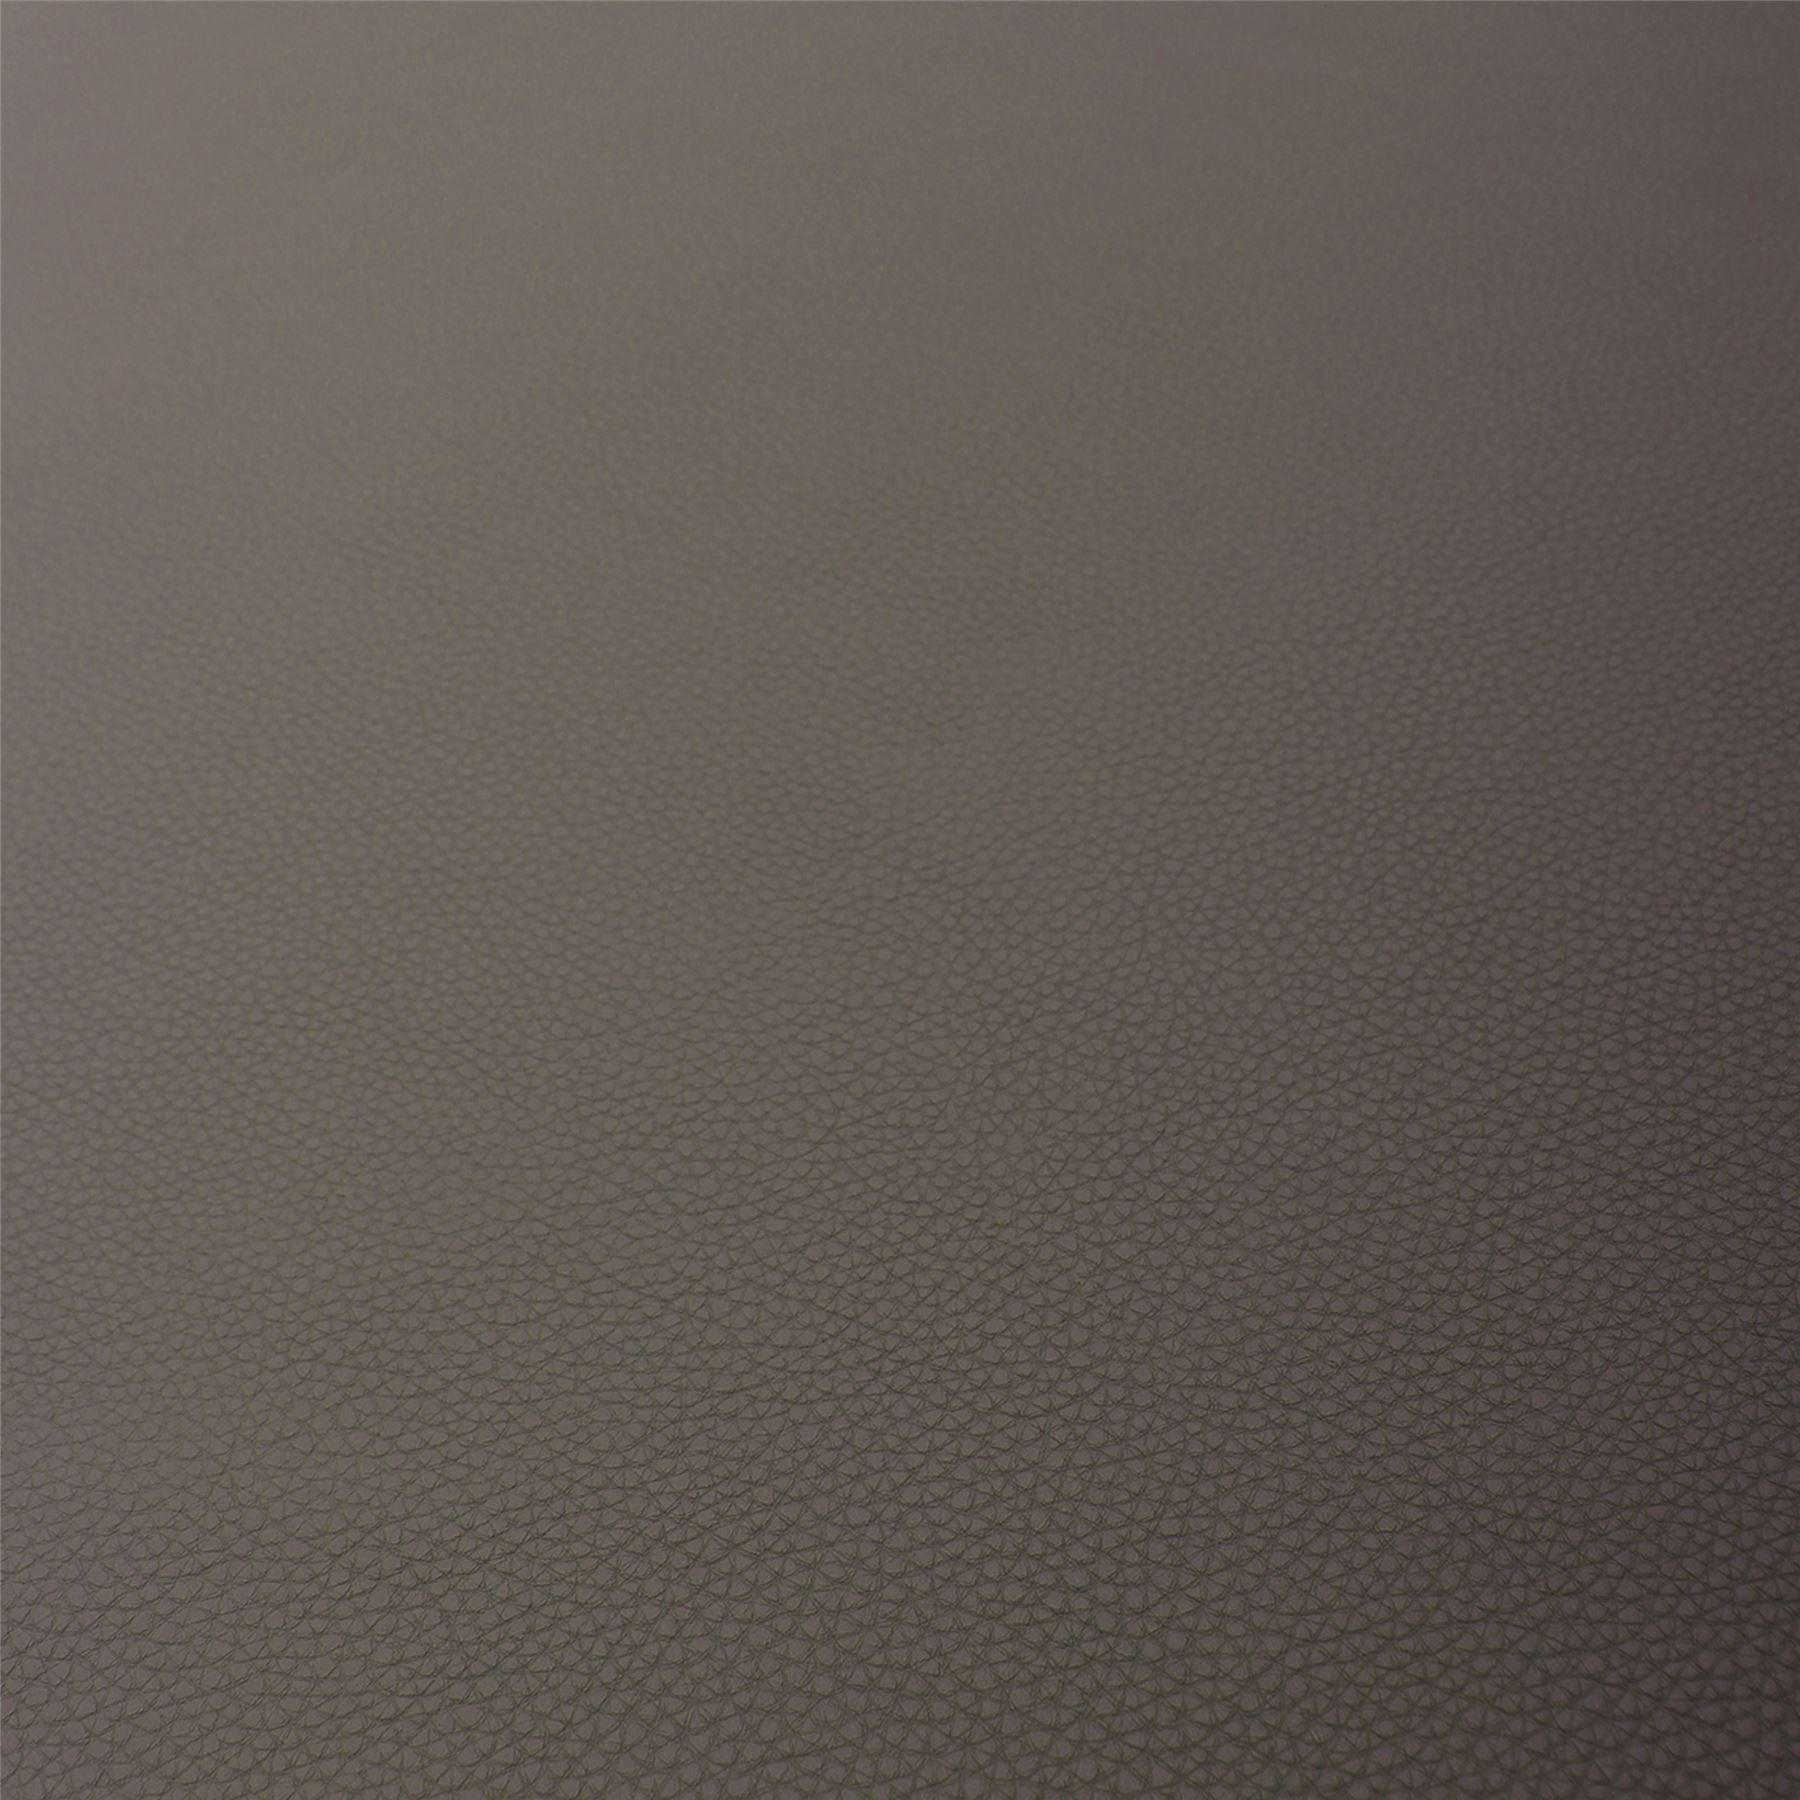 Nova-Faux-Leatherette-Artificial-Leather-Heavy-Grain-Upholstery-Vehicle-Fabric thumbnail 20